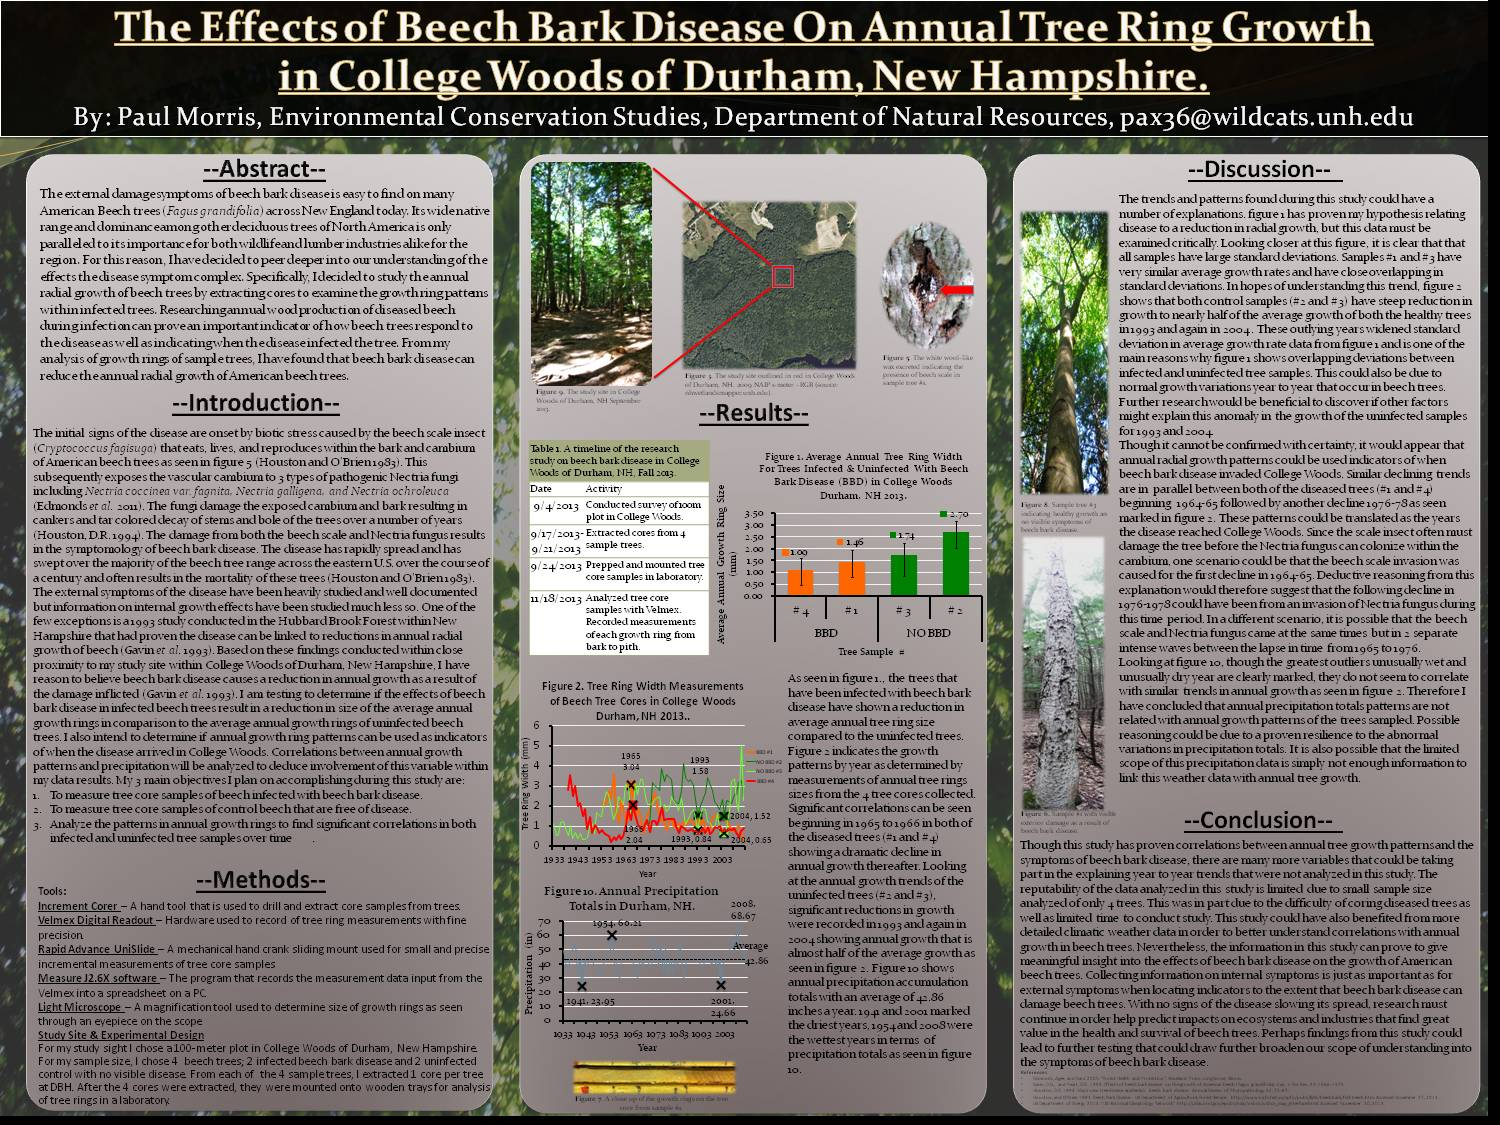 The Effects Of Beech Bark Disease On Annual Tree Ring Growth In College Woods Of Durham, New Hampshire by pax36